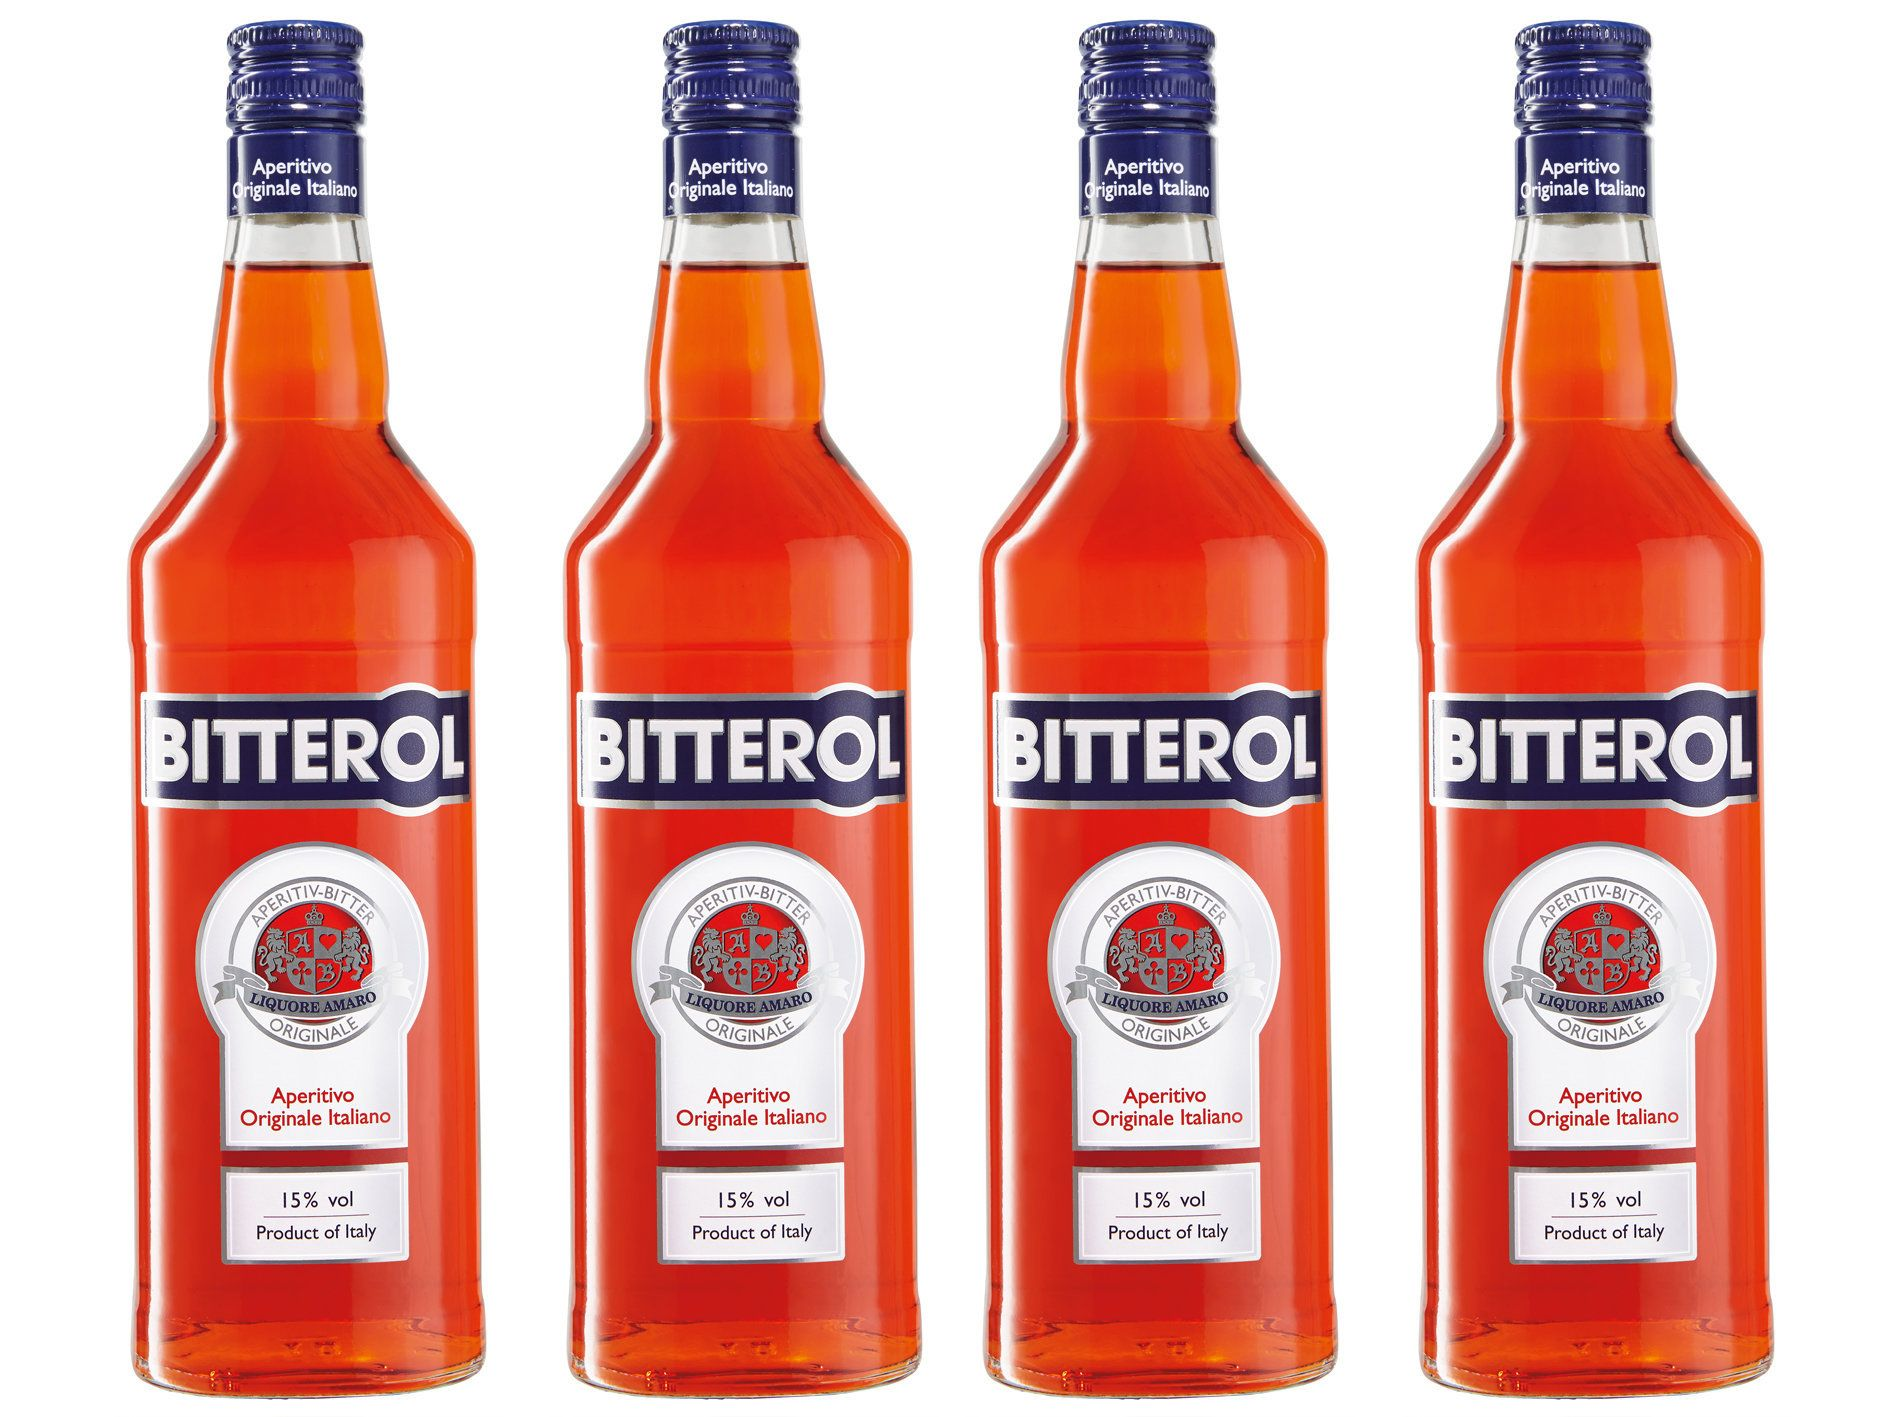 Lidl Is Selling An Aperol Rival Called 'Bitterol' And It Costs Half The